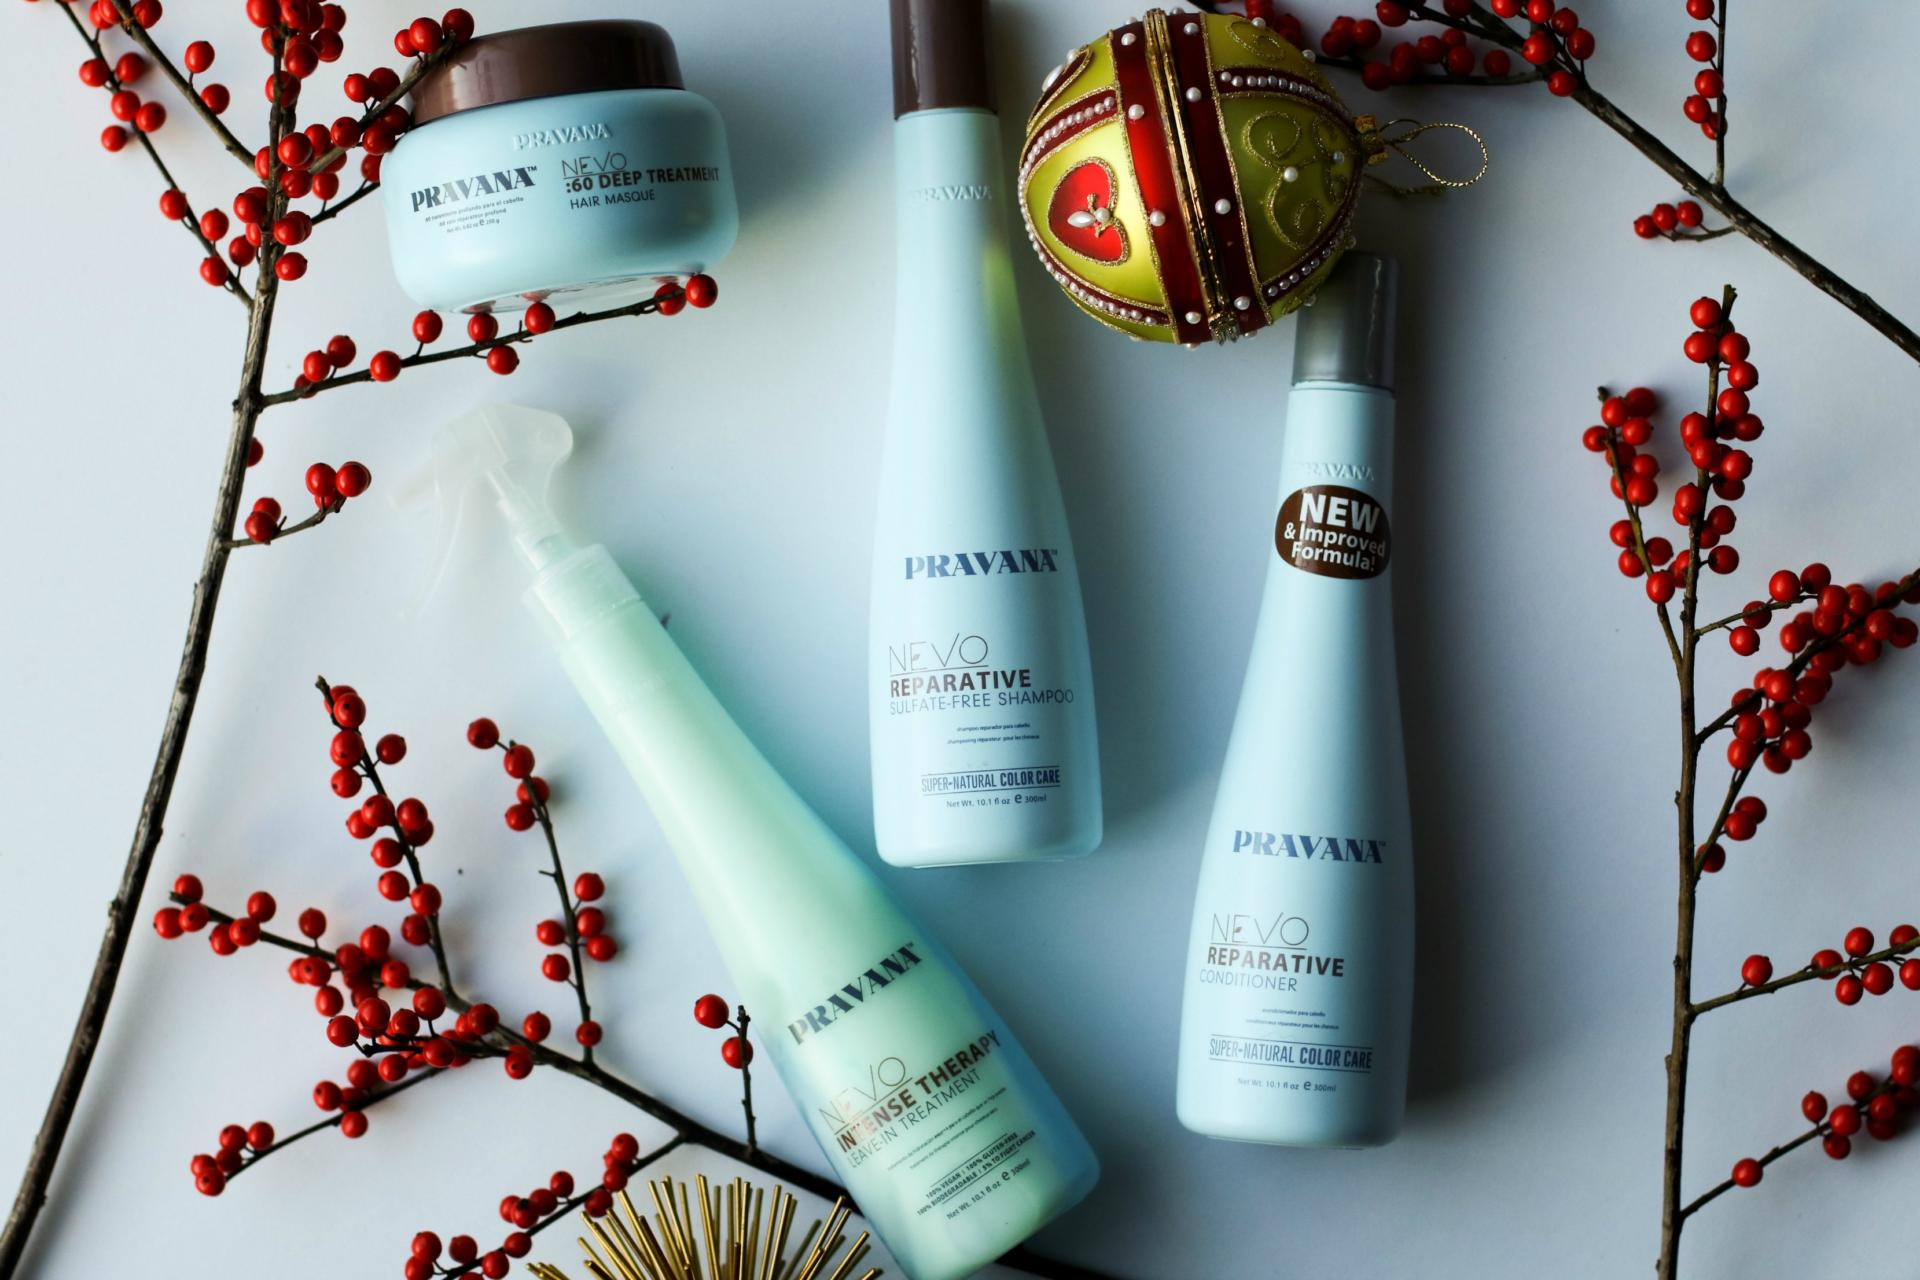 #HairGoals: Pravana, Curly Hair Solutions and Luscious Curlers